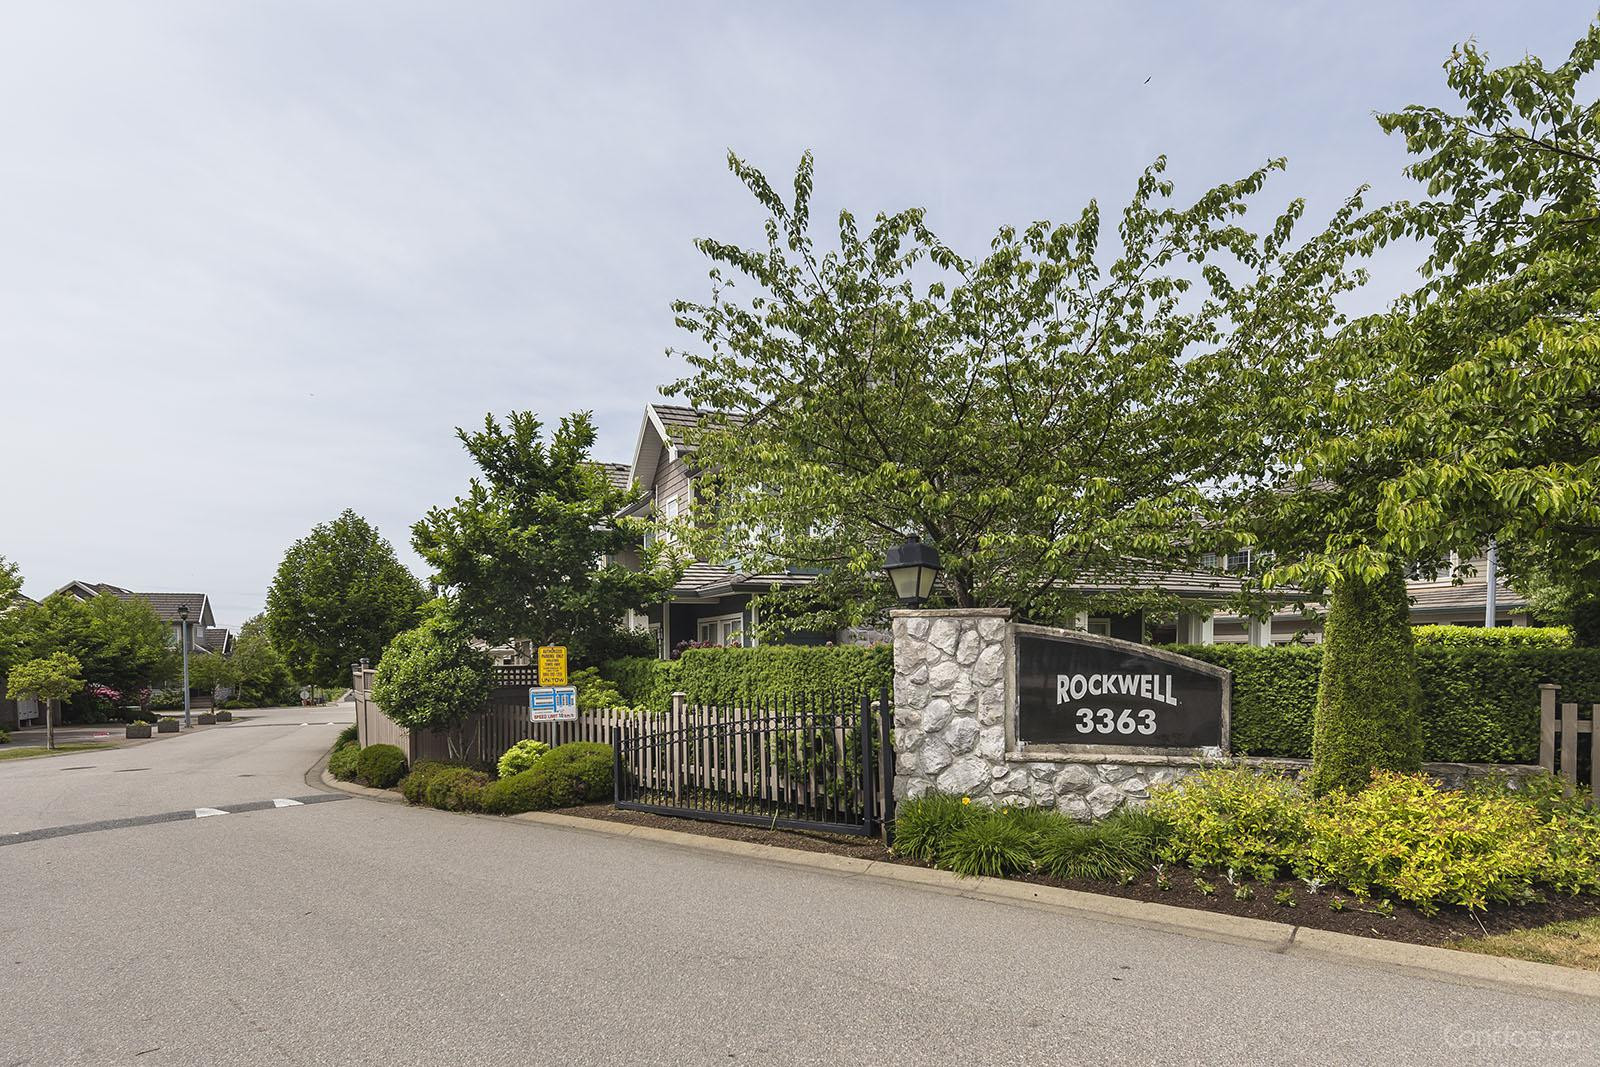 Rockwell at 3363 Rosemary Heights Crescent, Surrey 0